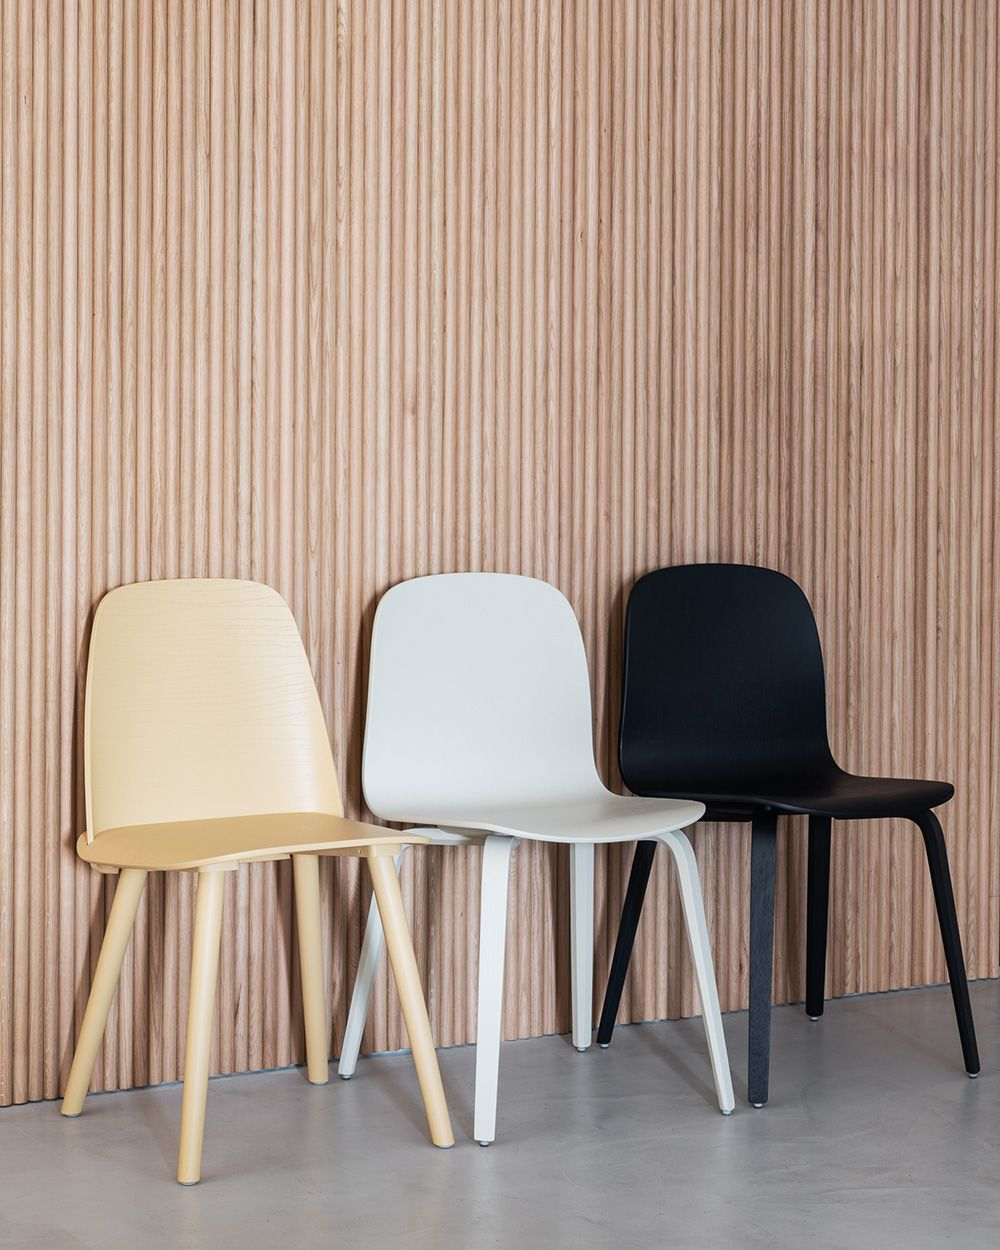 Bringing Lightness Into Design The Visu Chair Wood Base Combines Ergonomic In 2020 Scandinavian Furniture Design Dining Room Decor Modern Scandinavian Interior Design